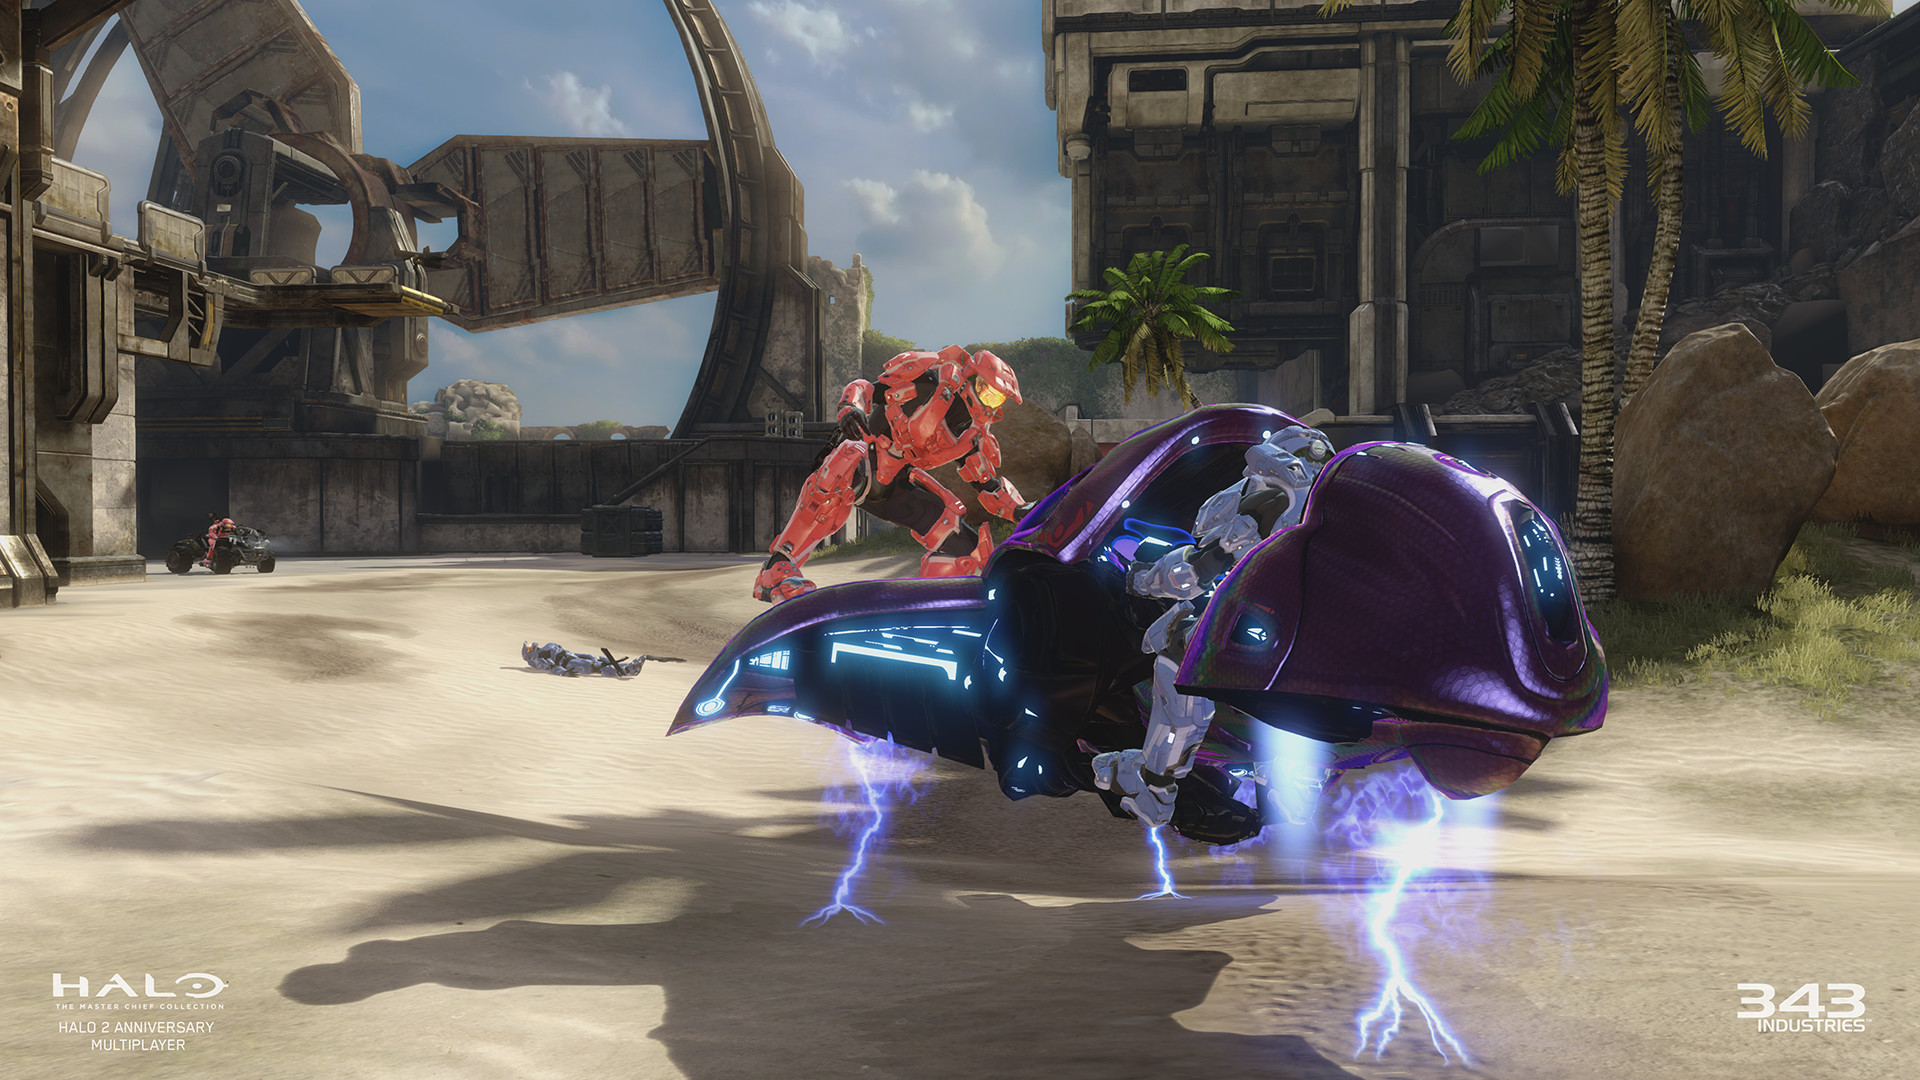 Halo: The Master Chief Collection - screenshot 2